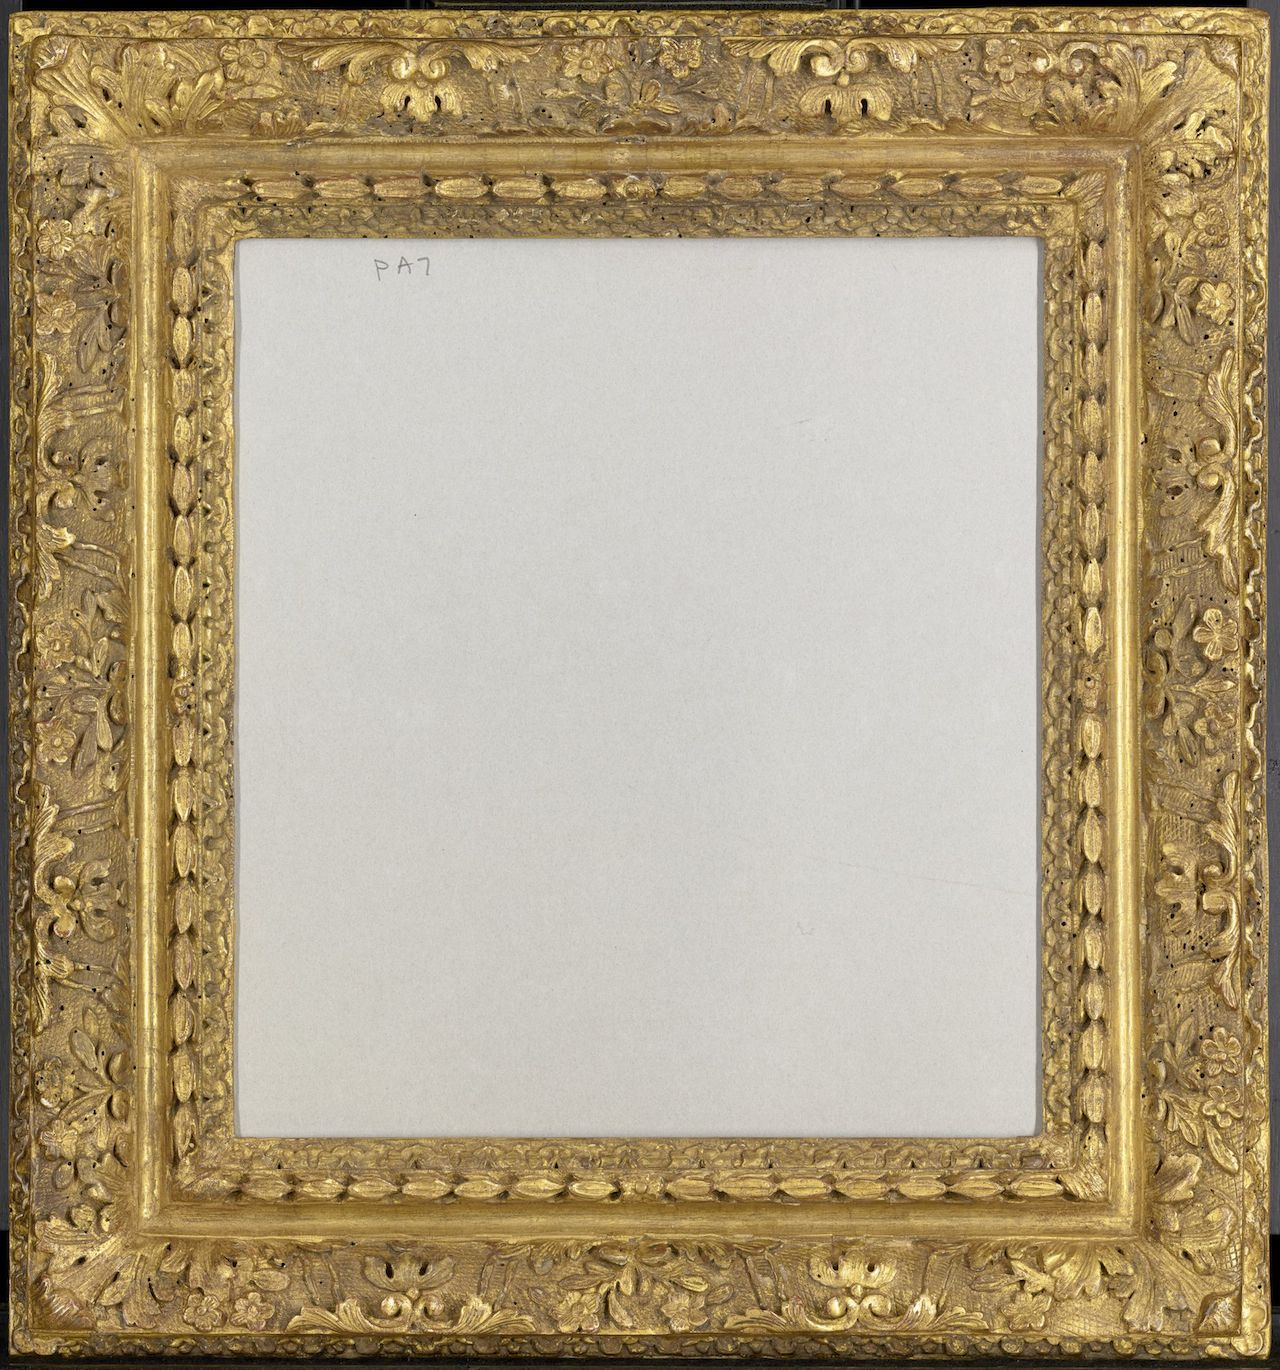 A French History of Gold, Gilded, and Fancy Frames | antik Rahmen ...